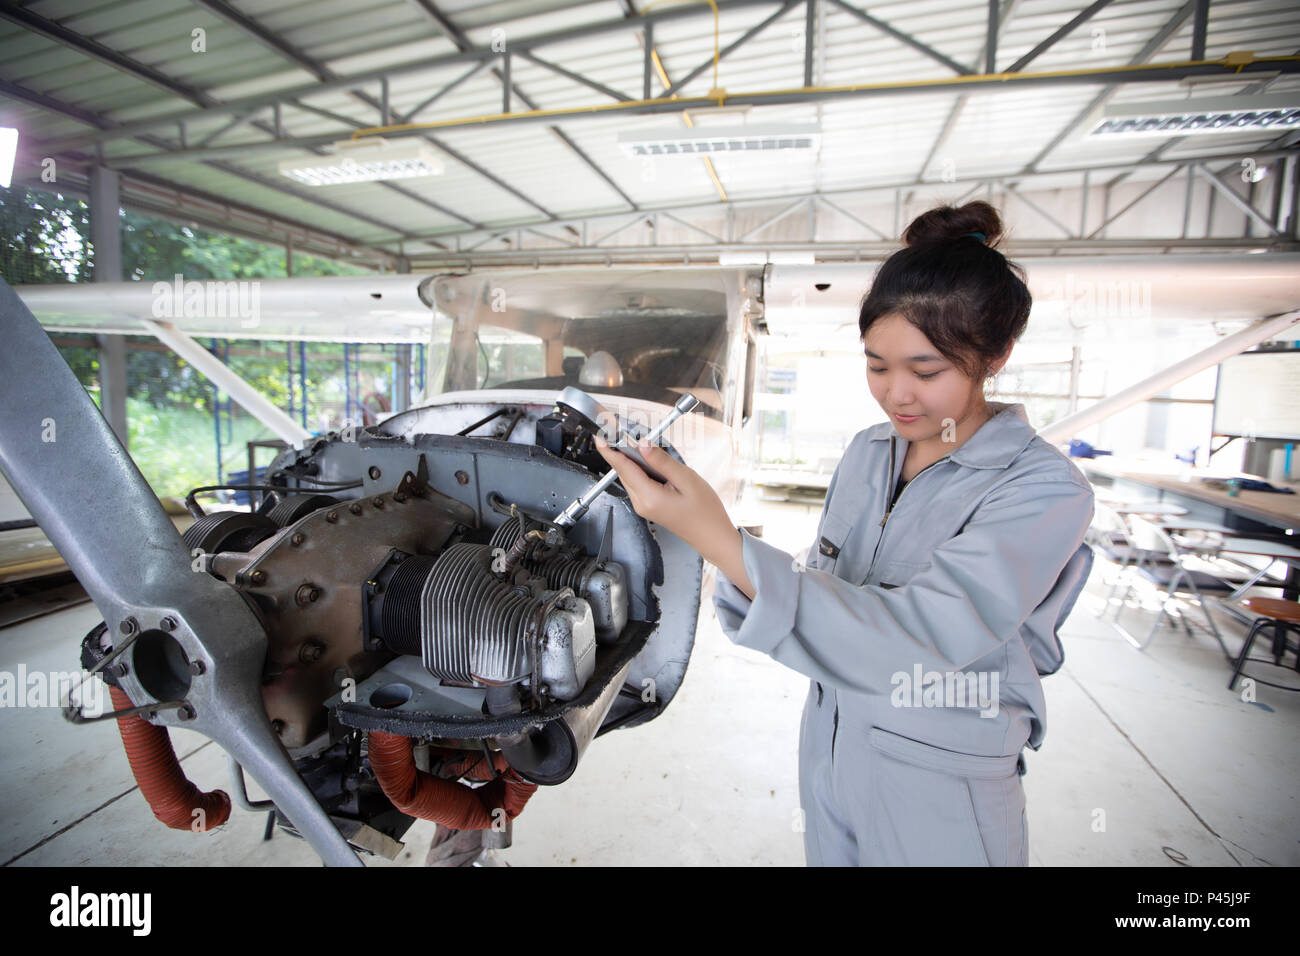 Asian men and women Engineers and technicians are repairing aircraft. - Stock Image